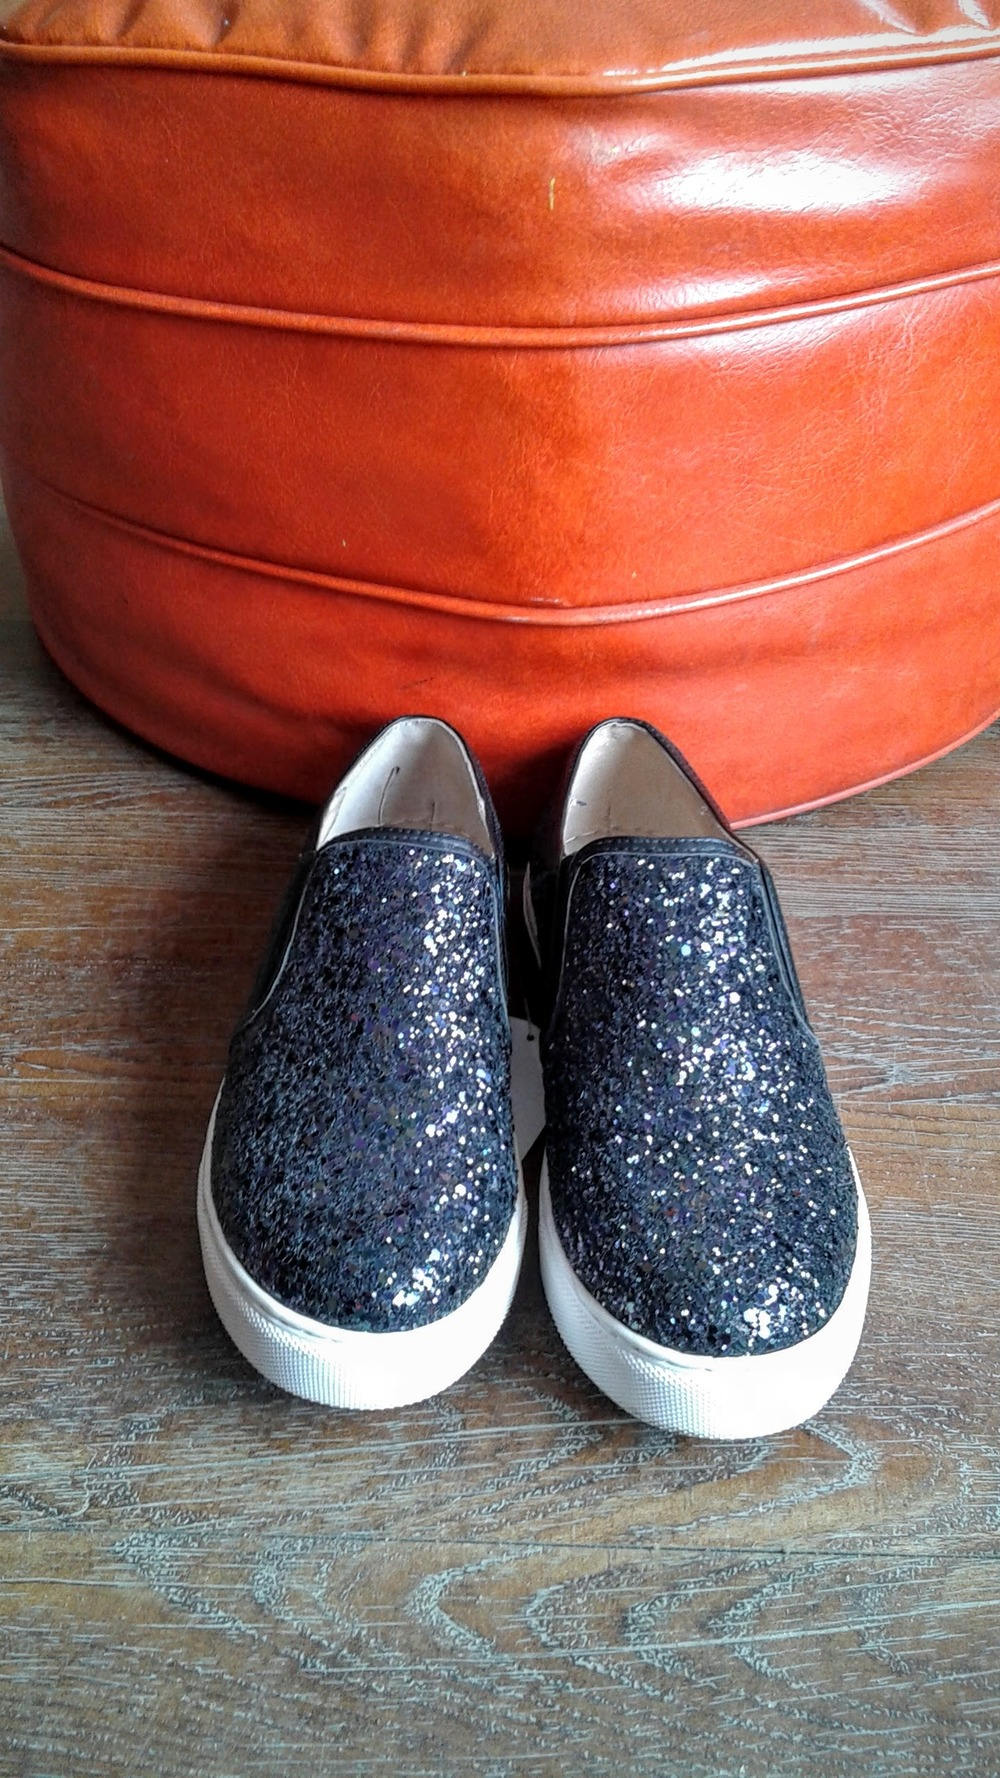 J-Slide shoes; S7, $48